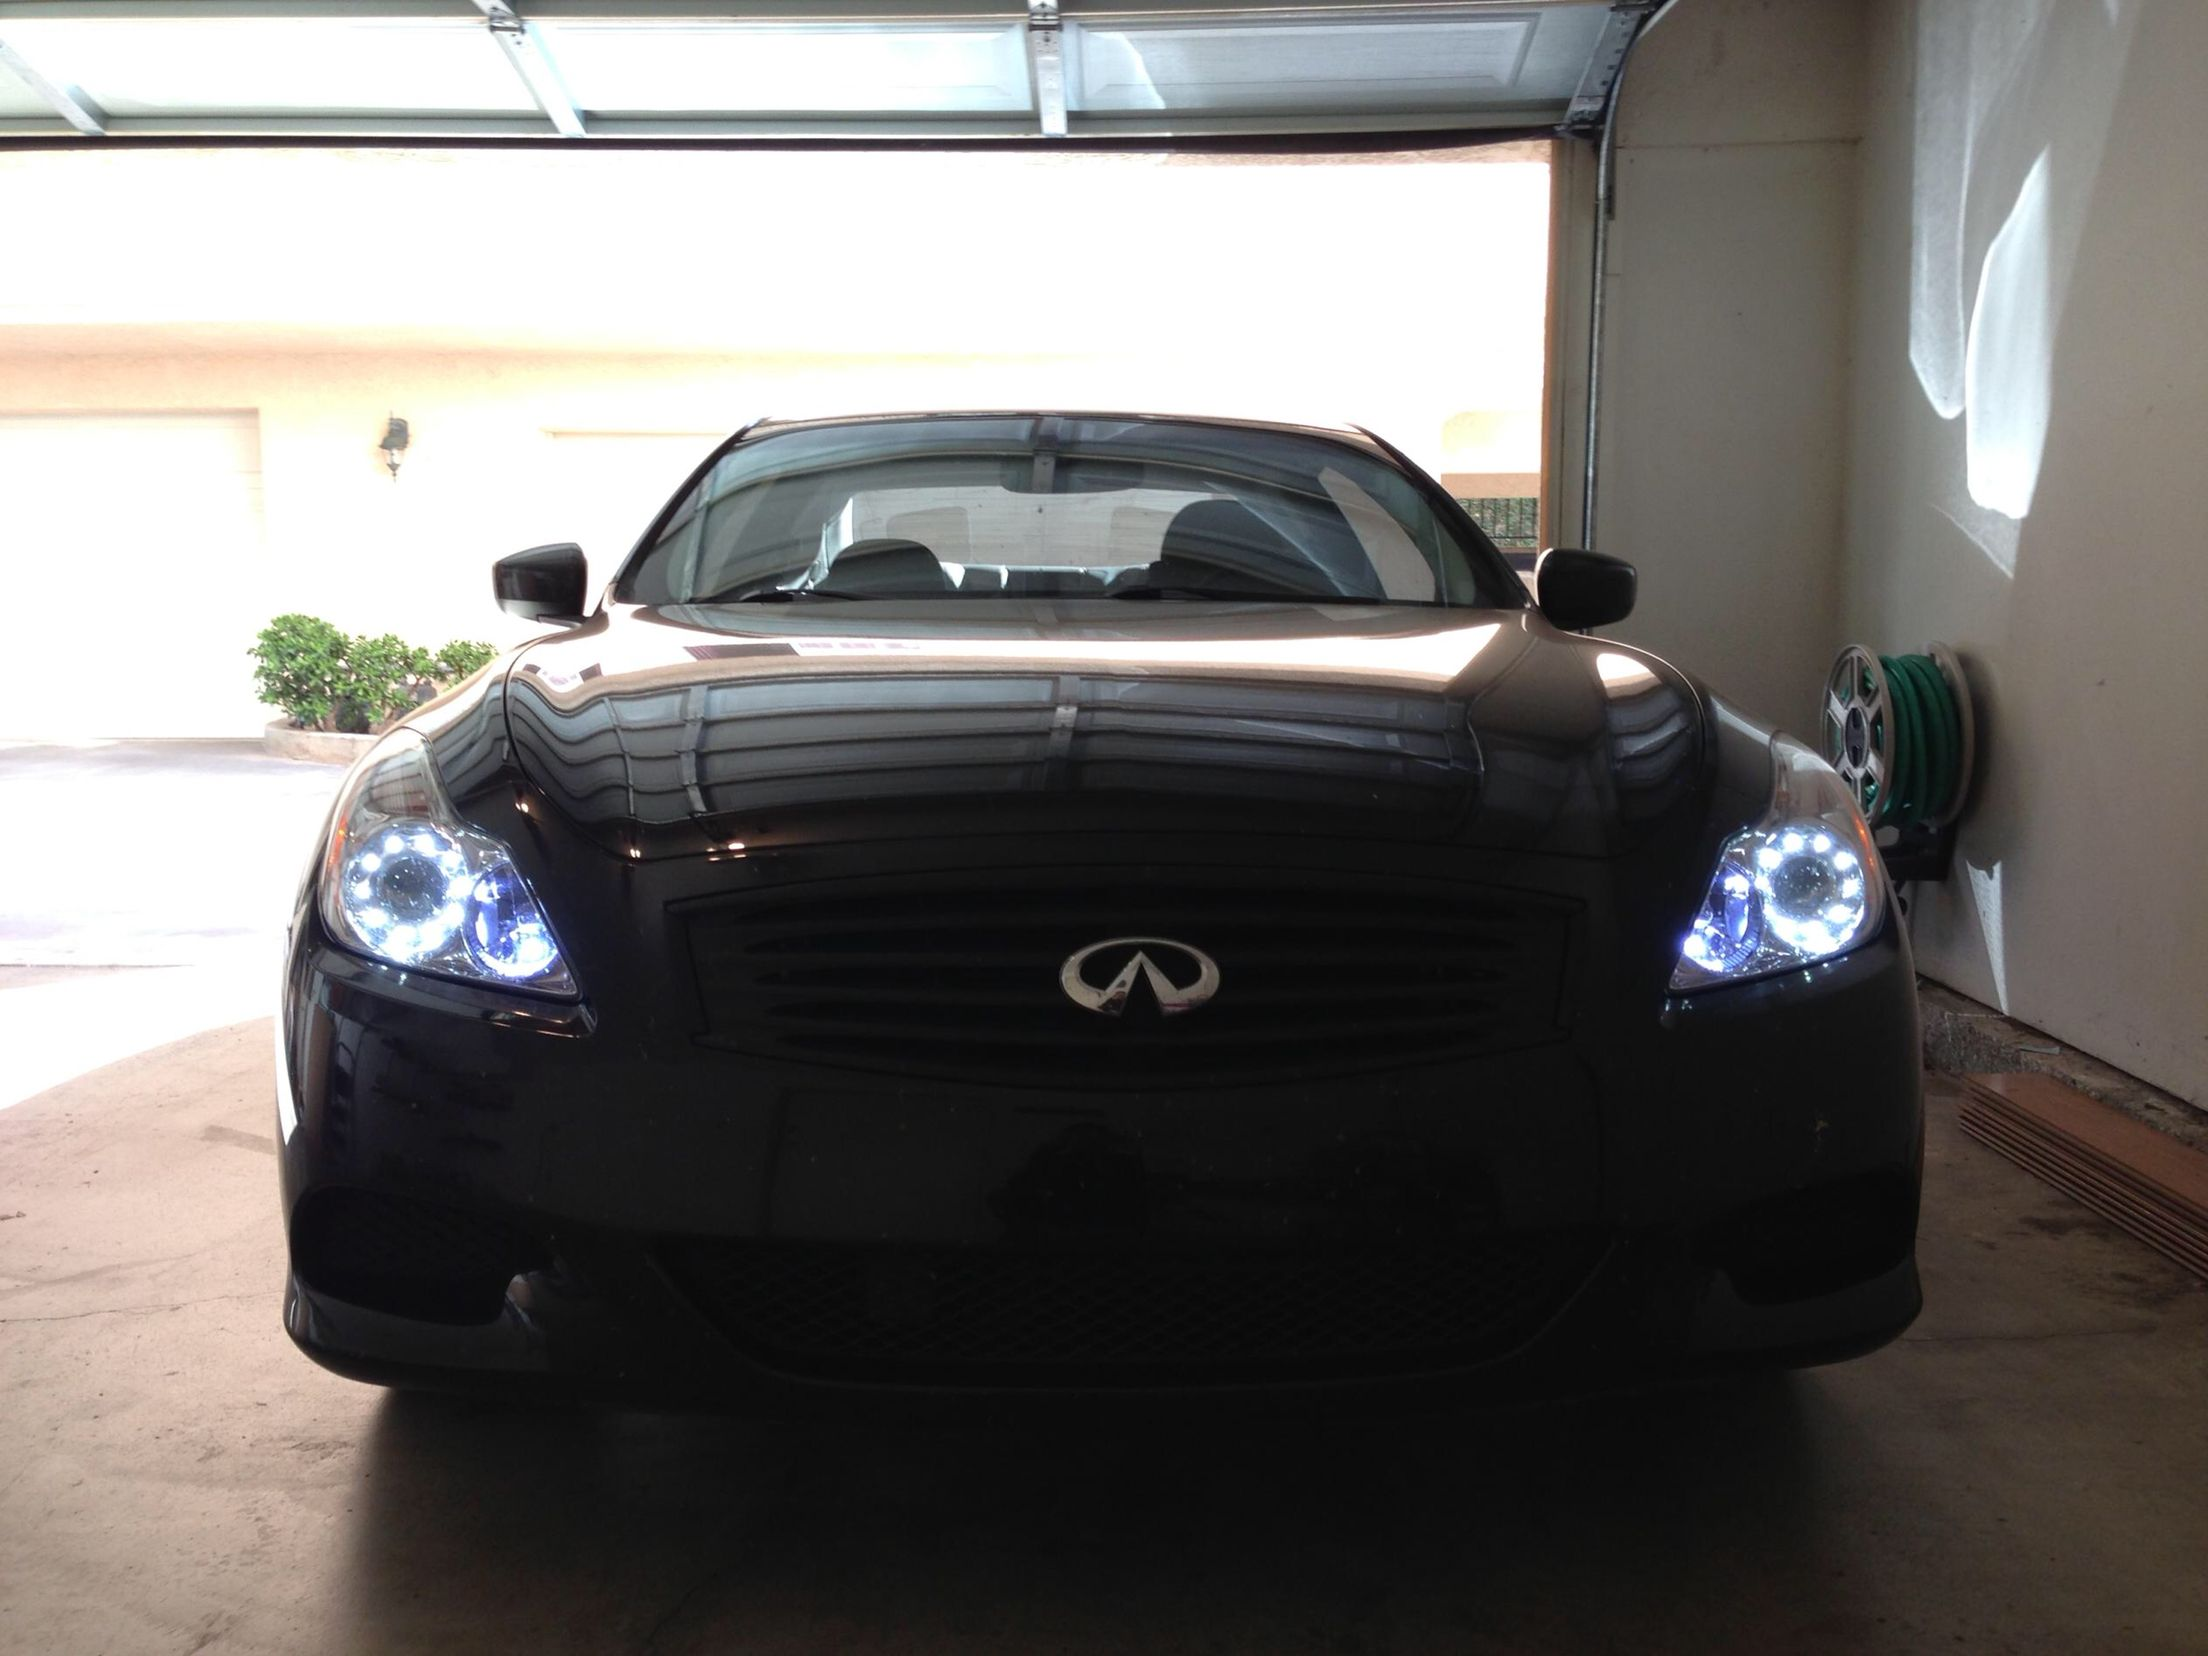 Black coupe w/ Angel Eyes and Iron Man headlights | G37 | Car, Angel